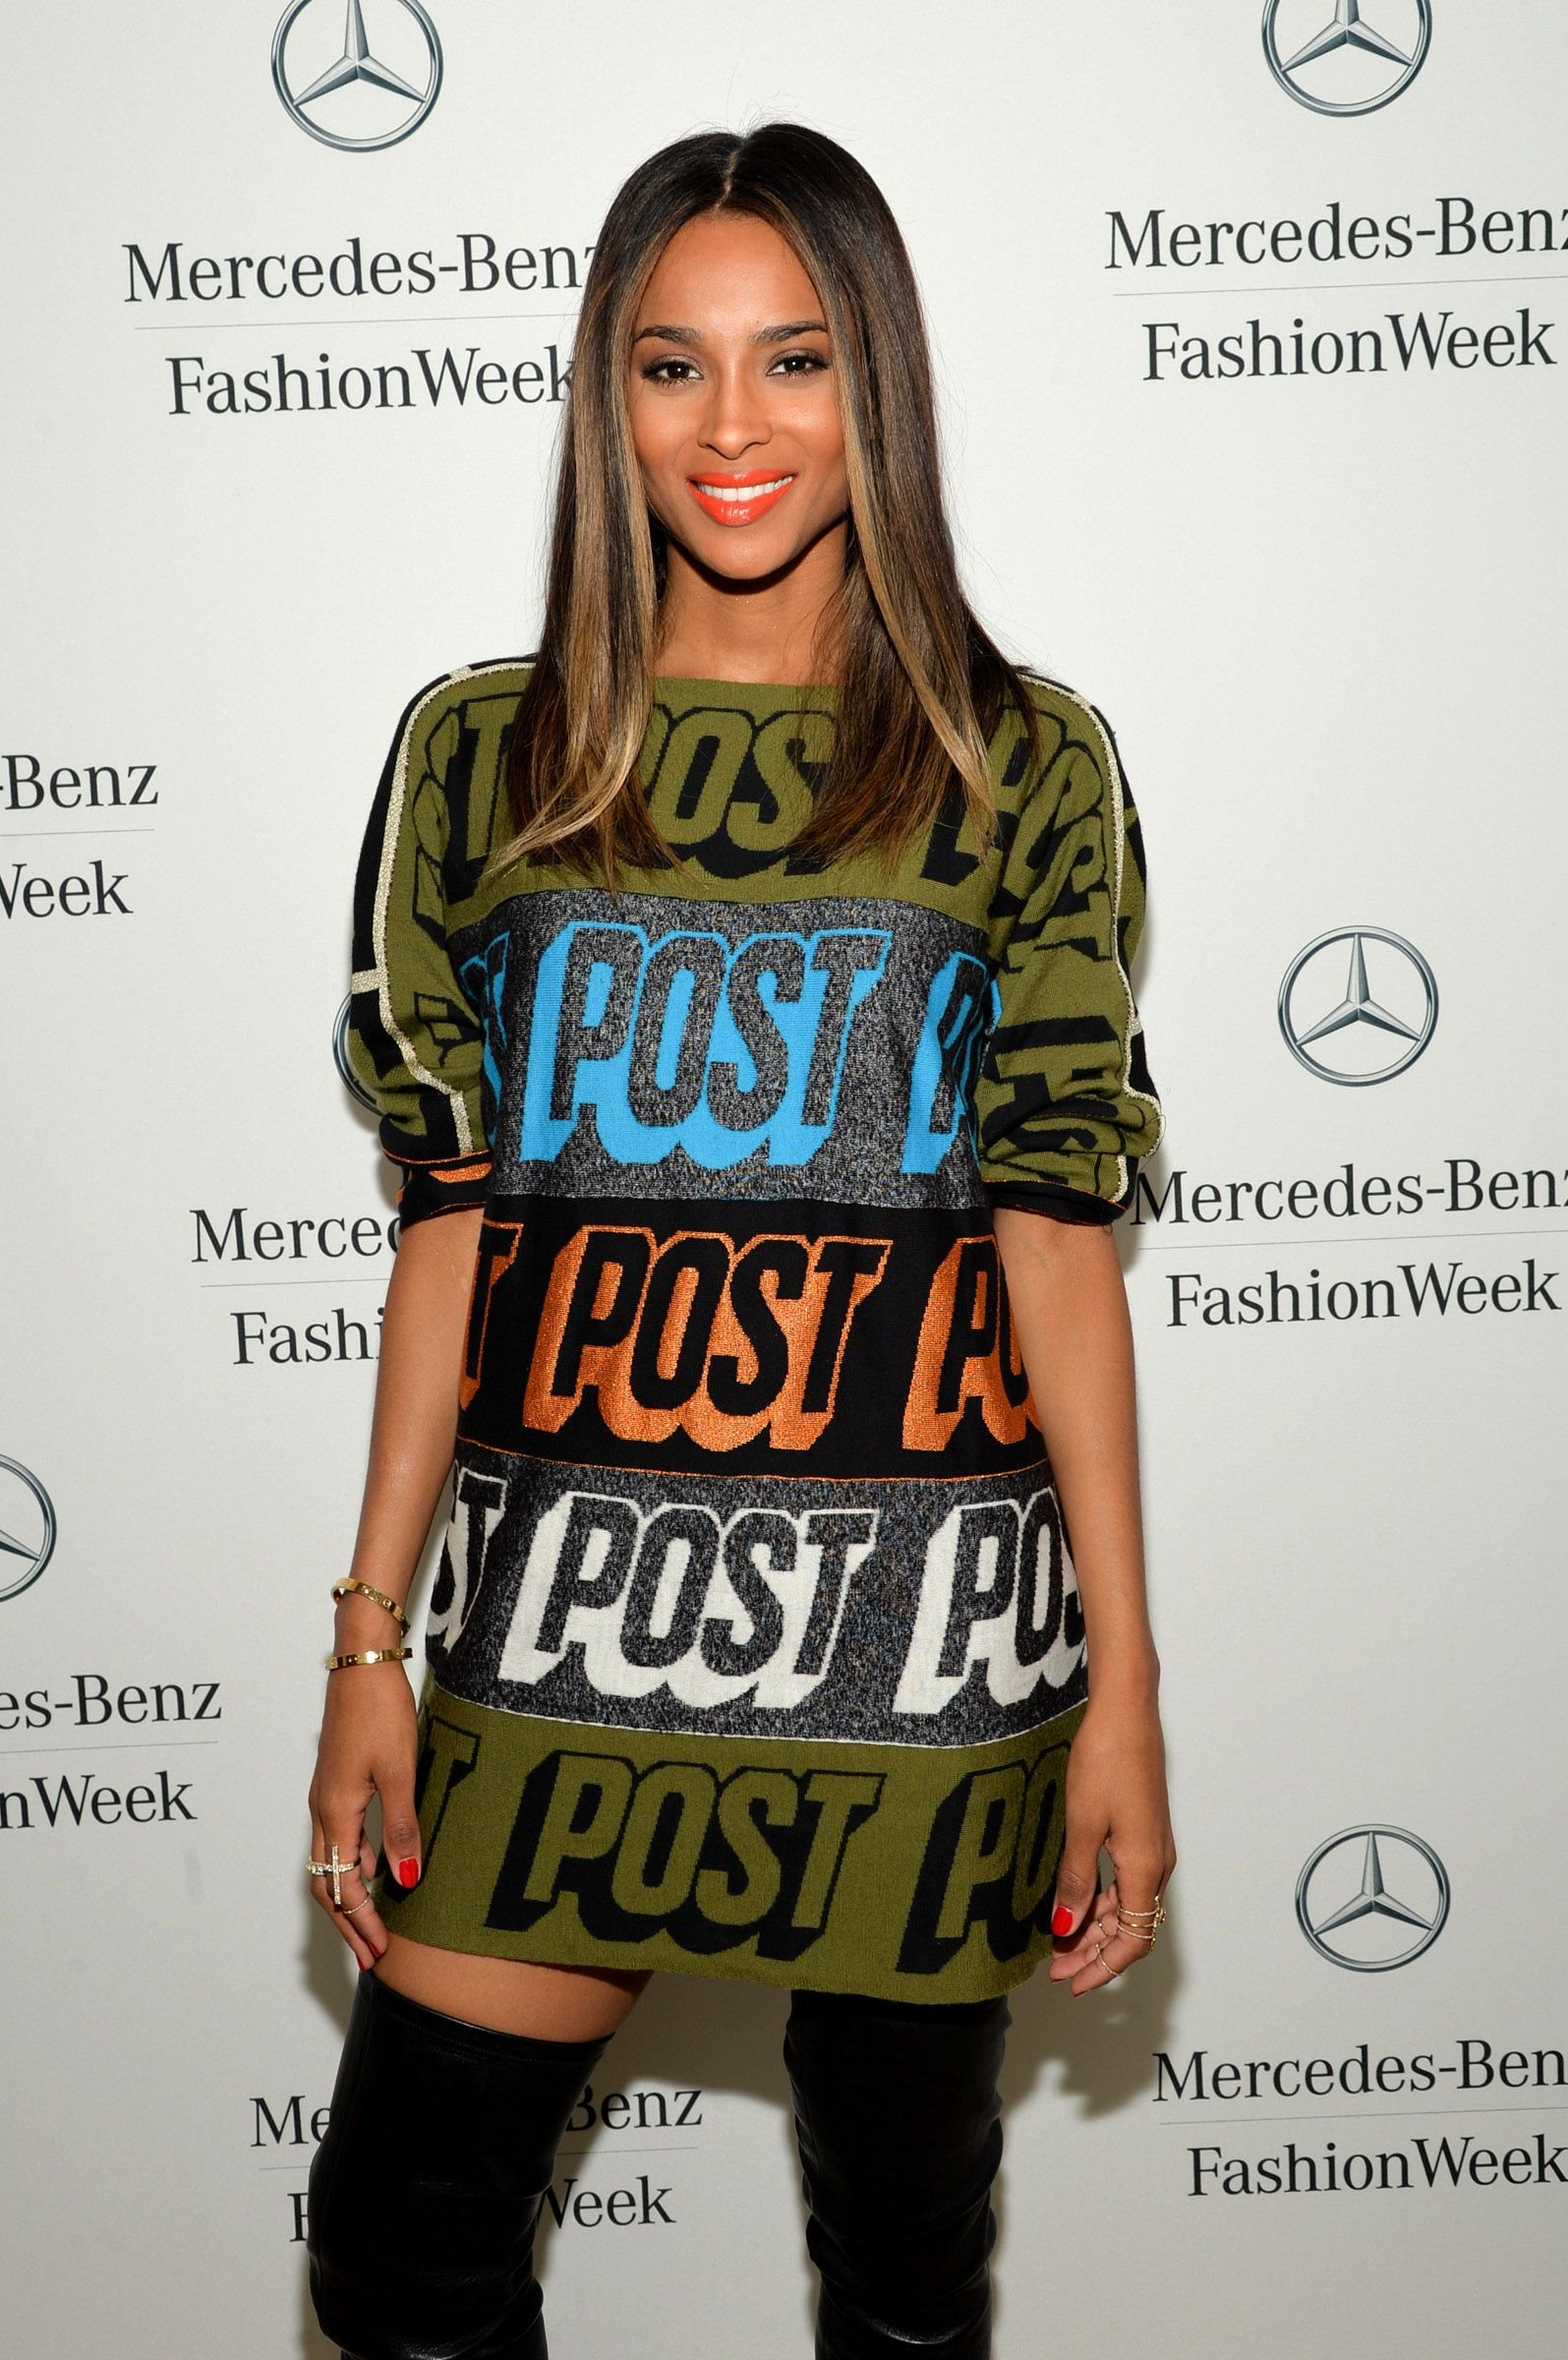 Ciara at the Mercedes-Benz Star Lounge during Mercedes-Benz Fashion Week Spring on September 9, 2013, in New York City | Photo: Mike Coppola/Getty Images